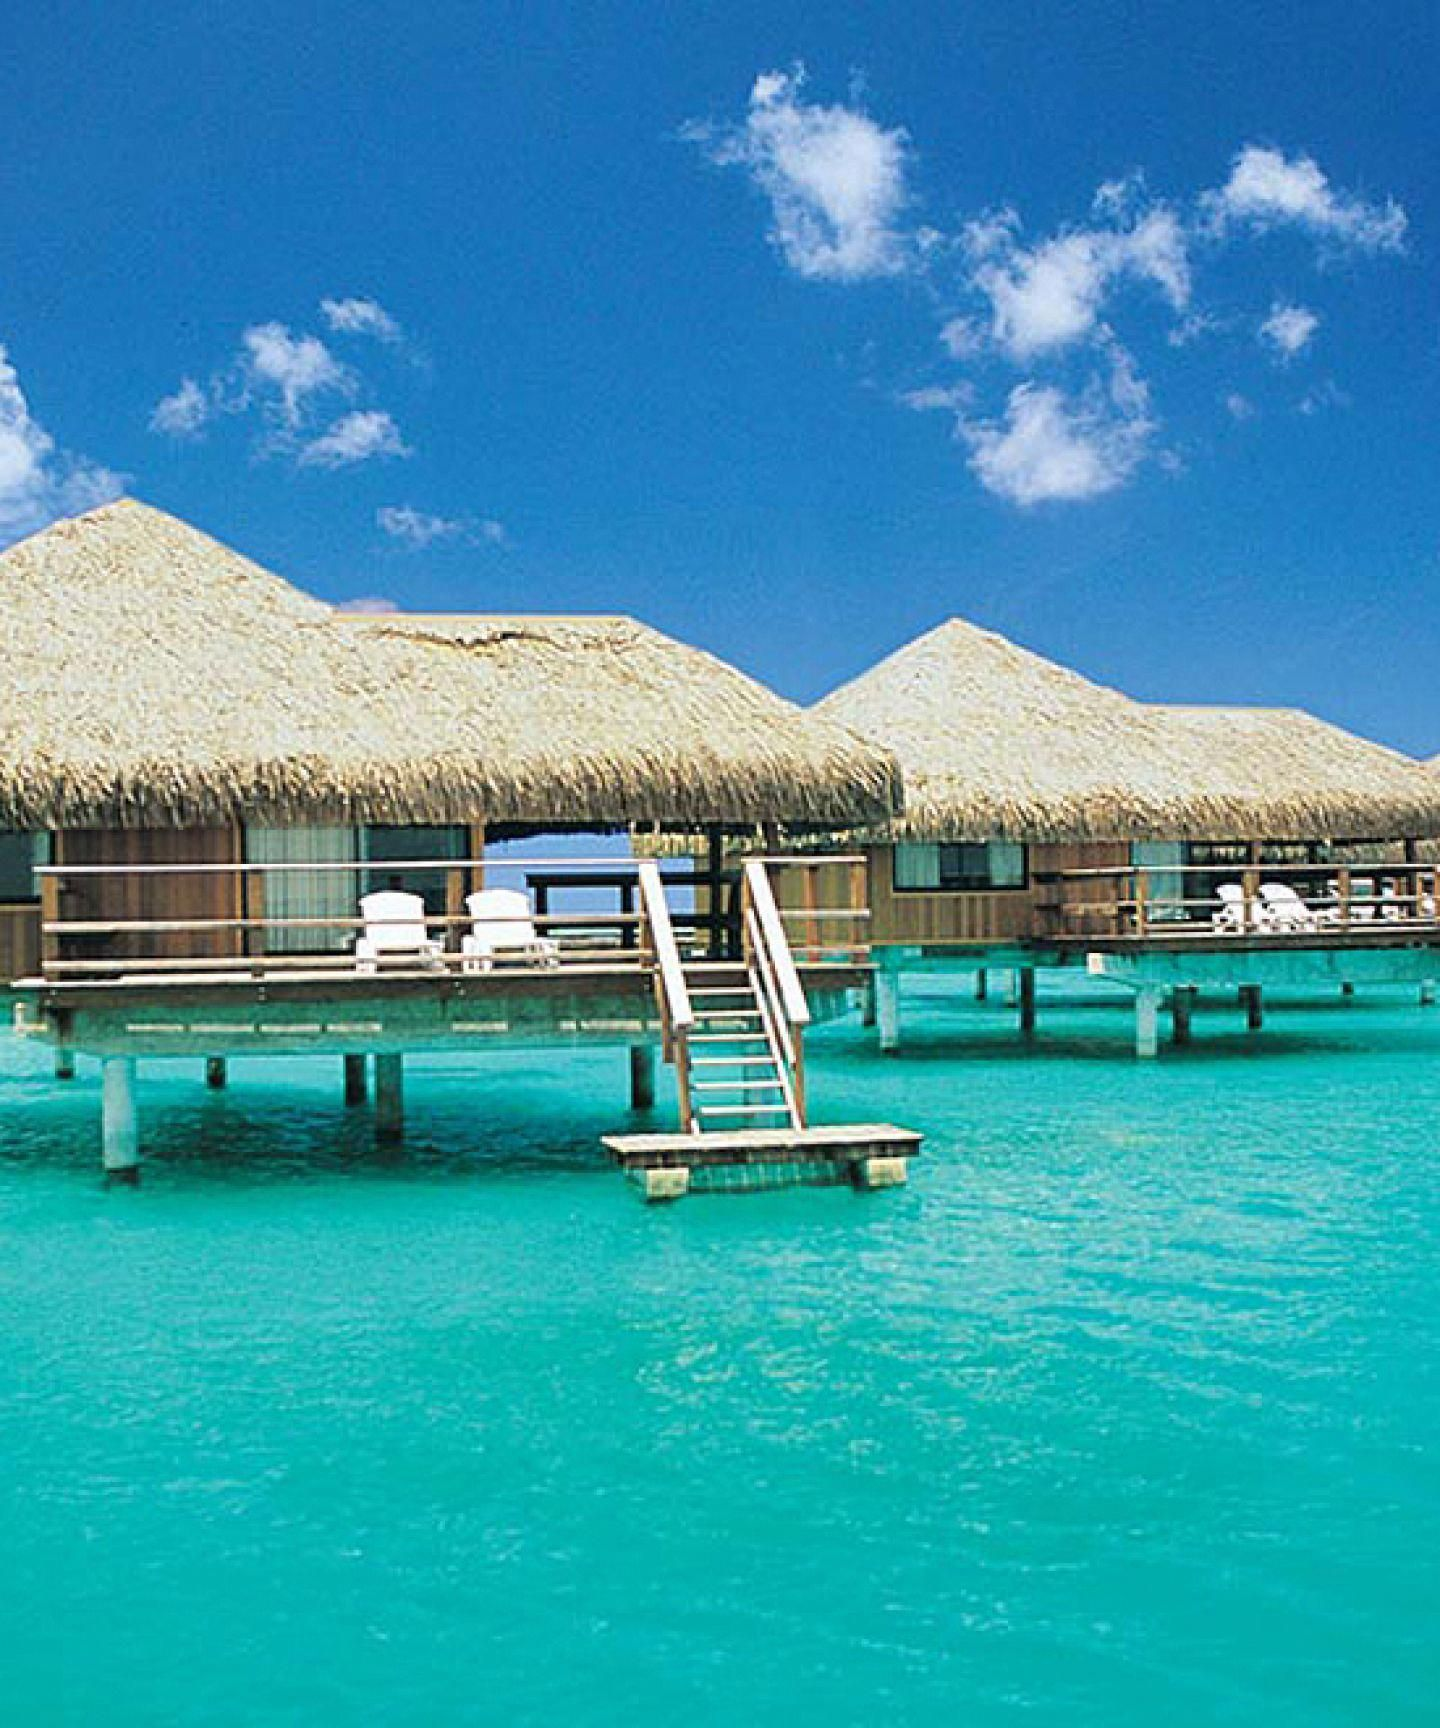 Overwater Vacation Bungalow Rentals in 2020  Places to